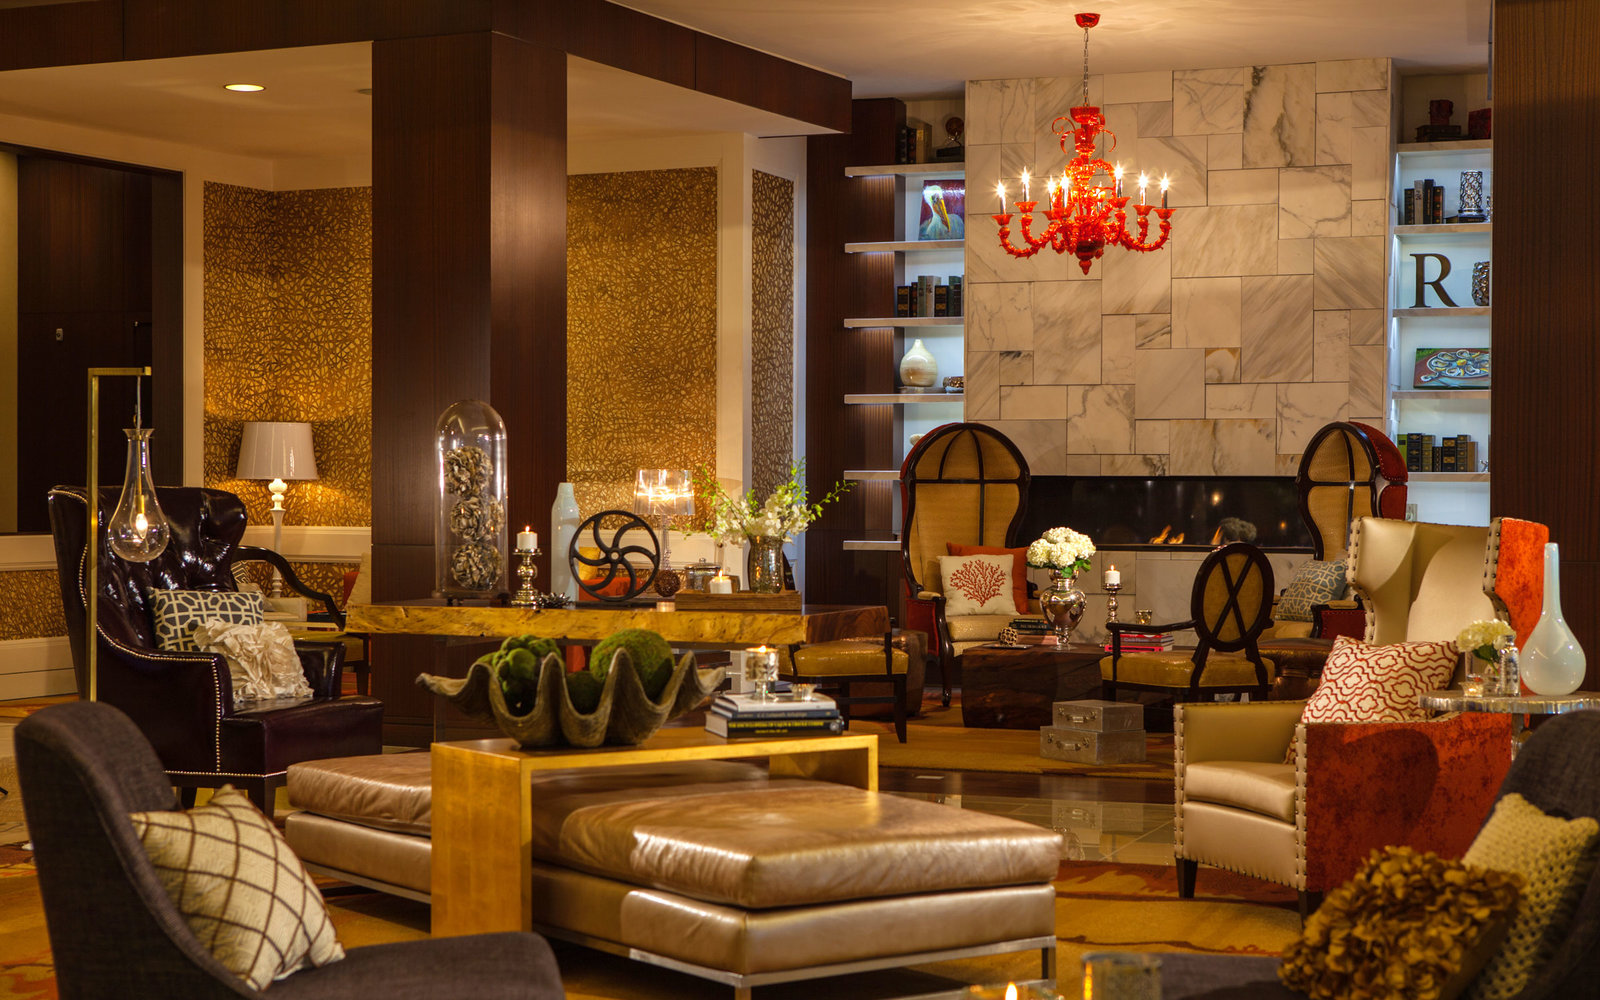 15 Five-Star Hotels for Way, Way Less